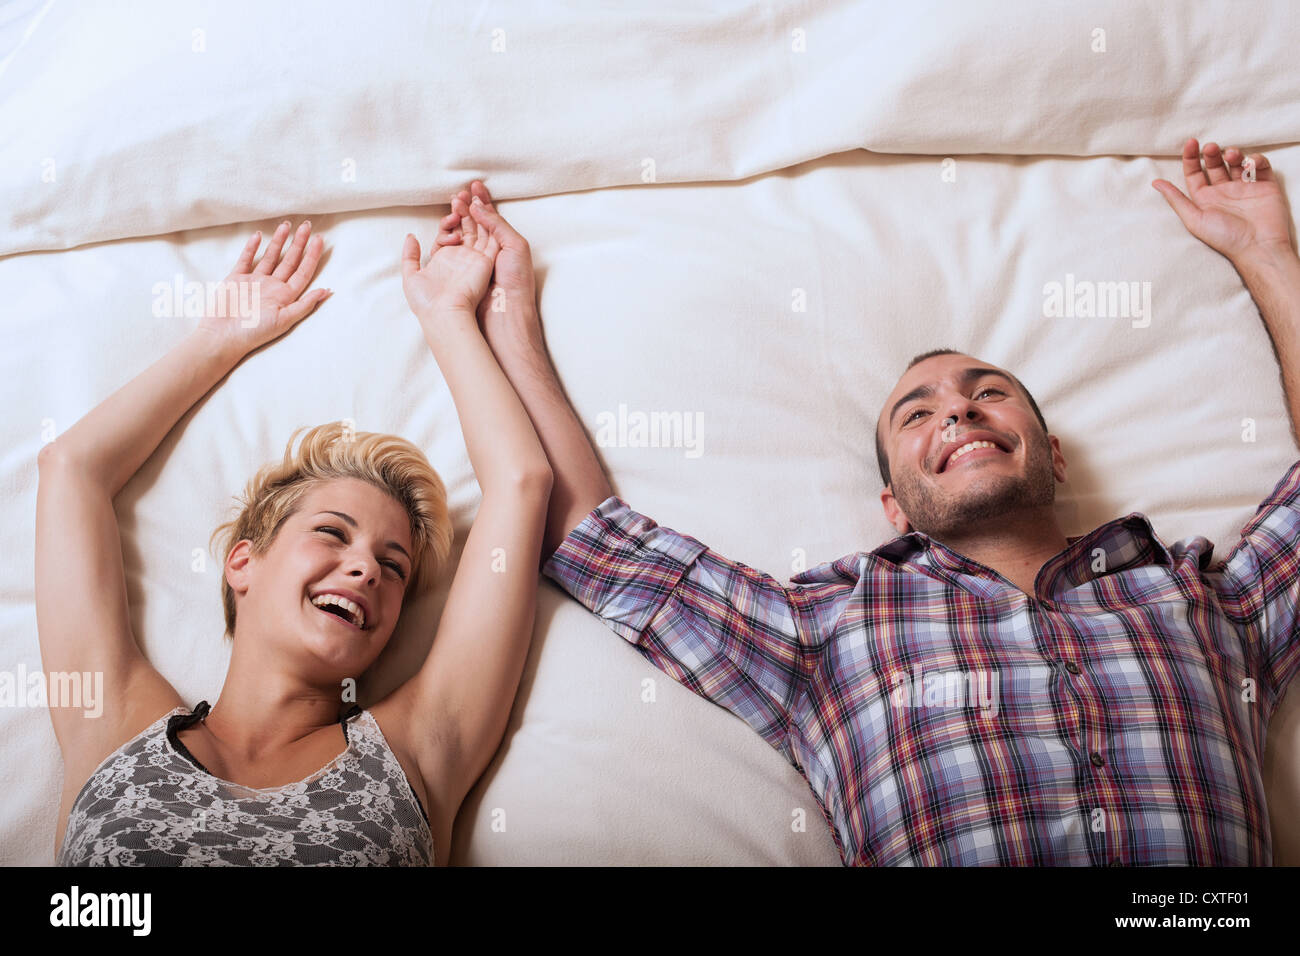 Couple relaxing on hotel room bed - Stock Image